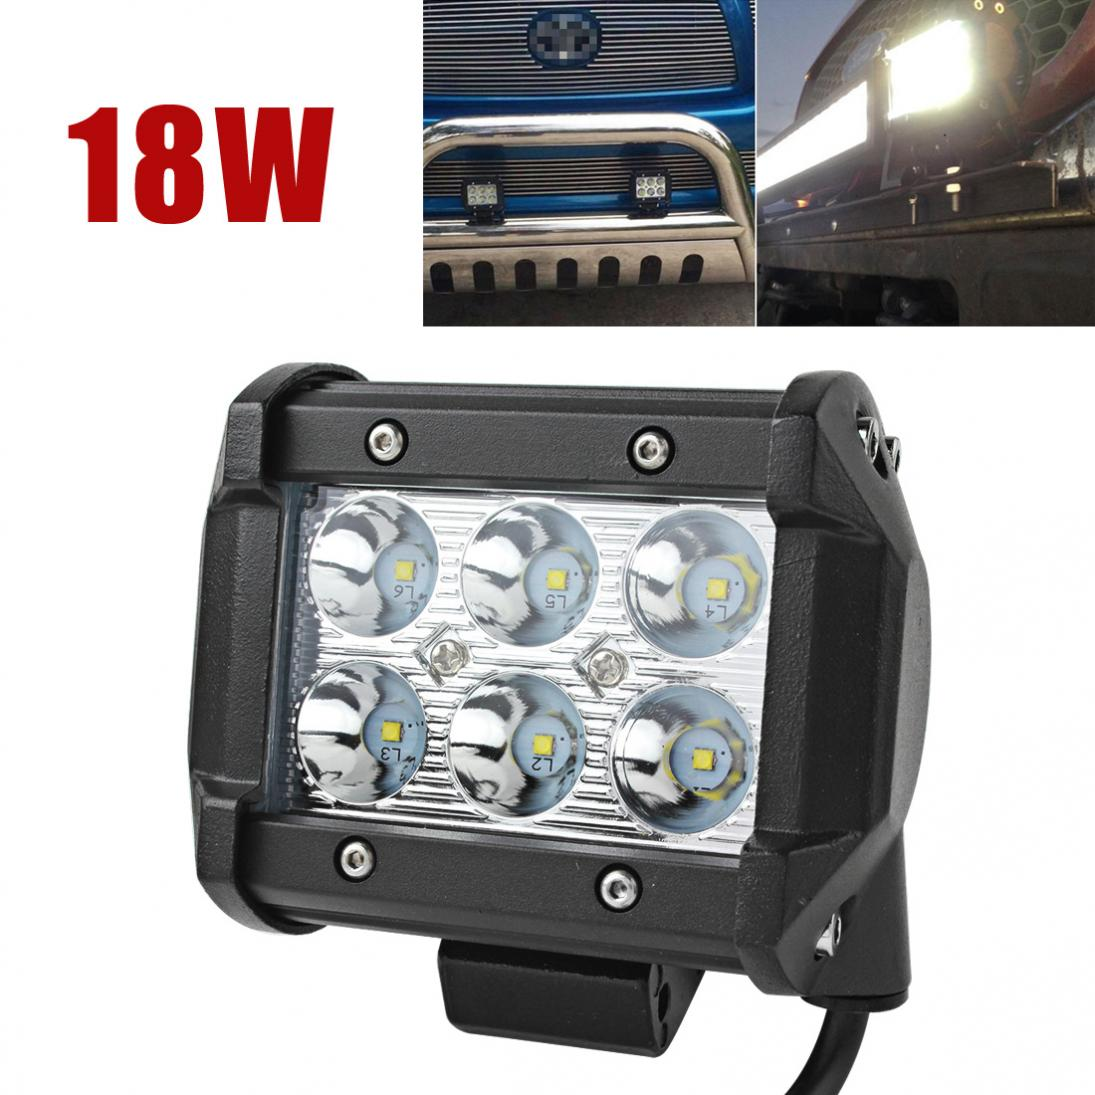 1 Piece 1440LM 6000K 18W Super Power Waterproof LED Car Work Light For Motorcycle / Tractor / Boat / 4WD Offroad / SUV / ATV